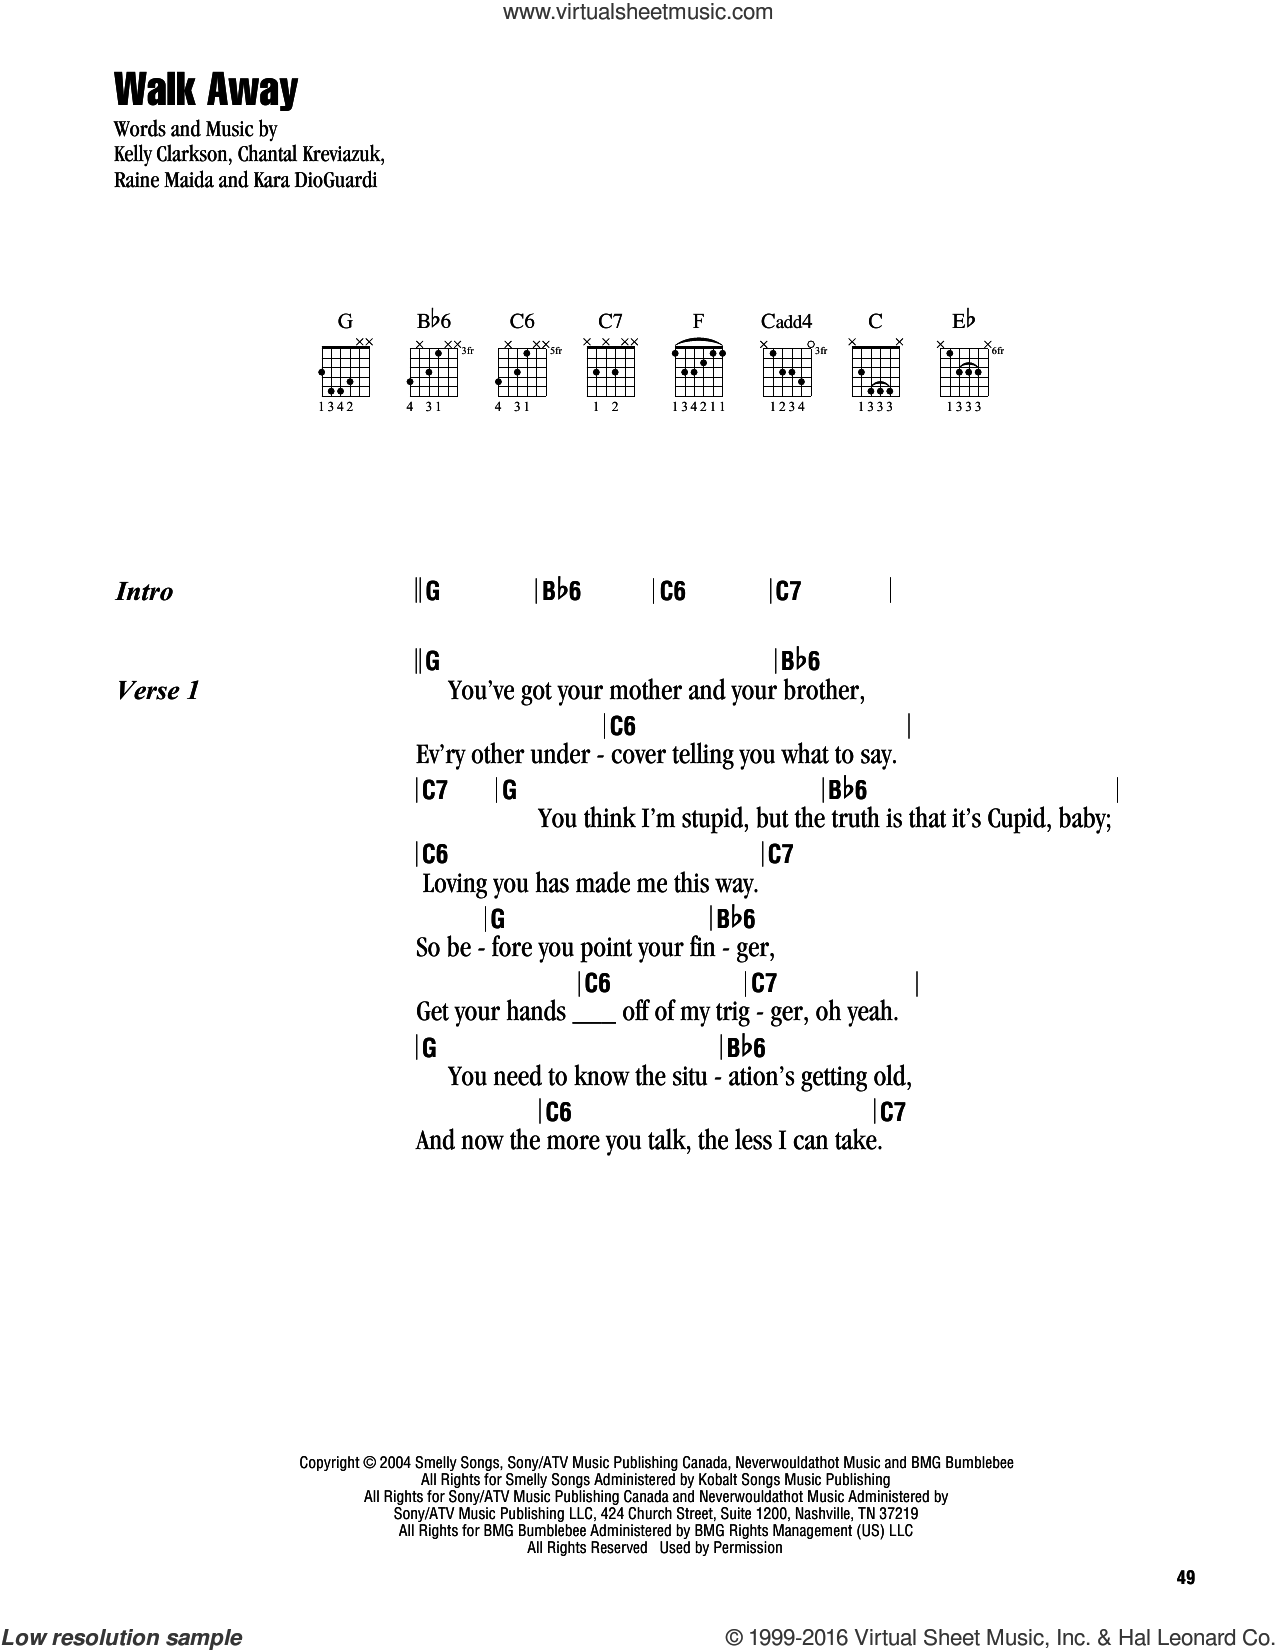 Walk Away sheet music for guitar (chords) by Kelly Clarkson, Chantal Kreviazuk, Kara DioGuardi and Raine Maida, intermediate skill level